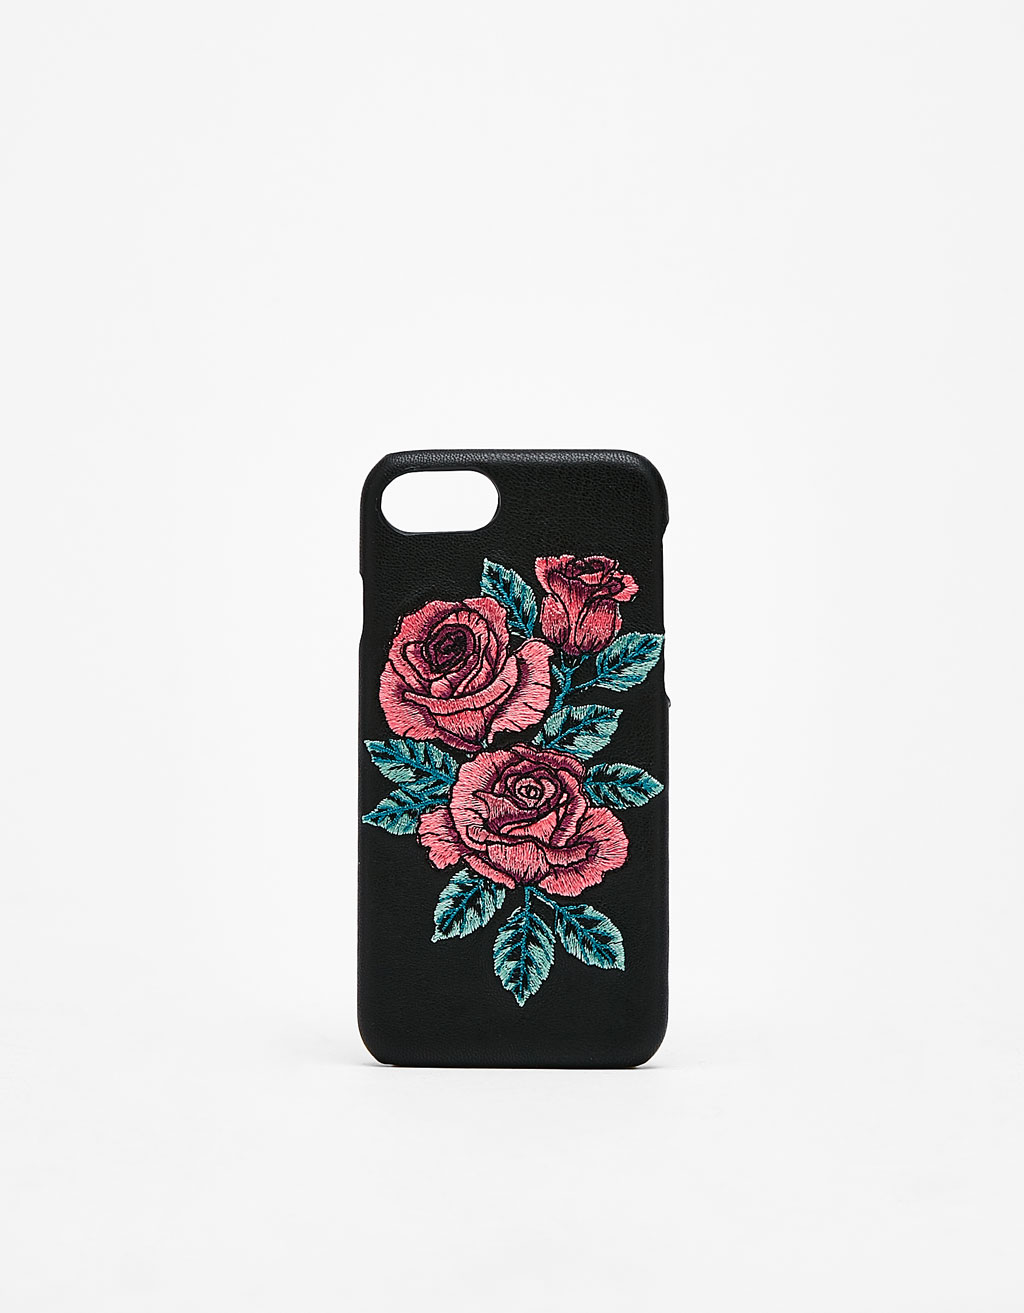 Embroidered rose iPhone 6/6s/7/8 case